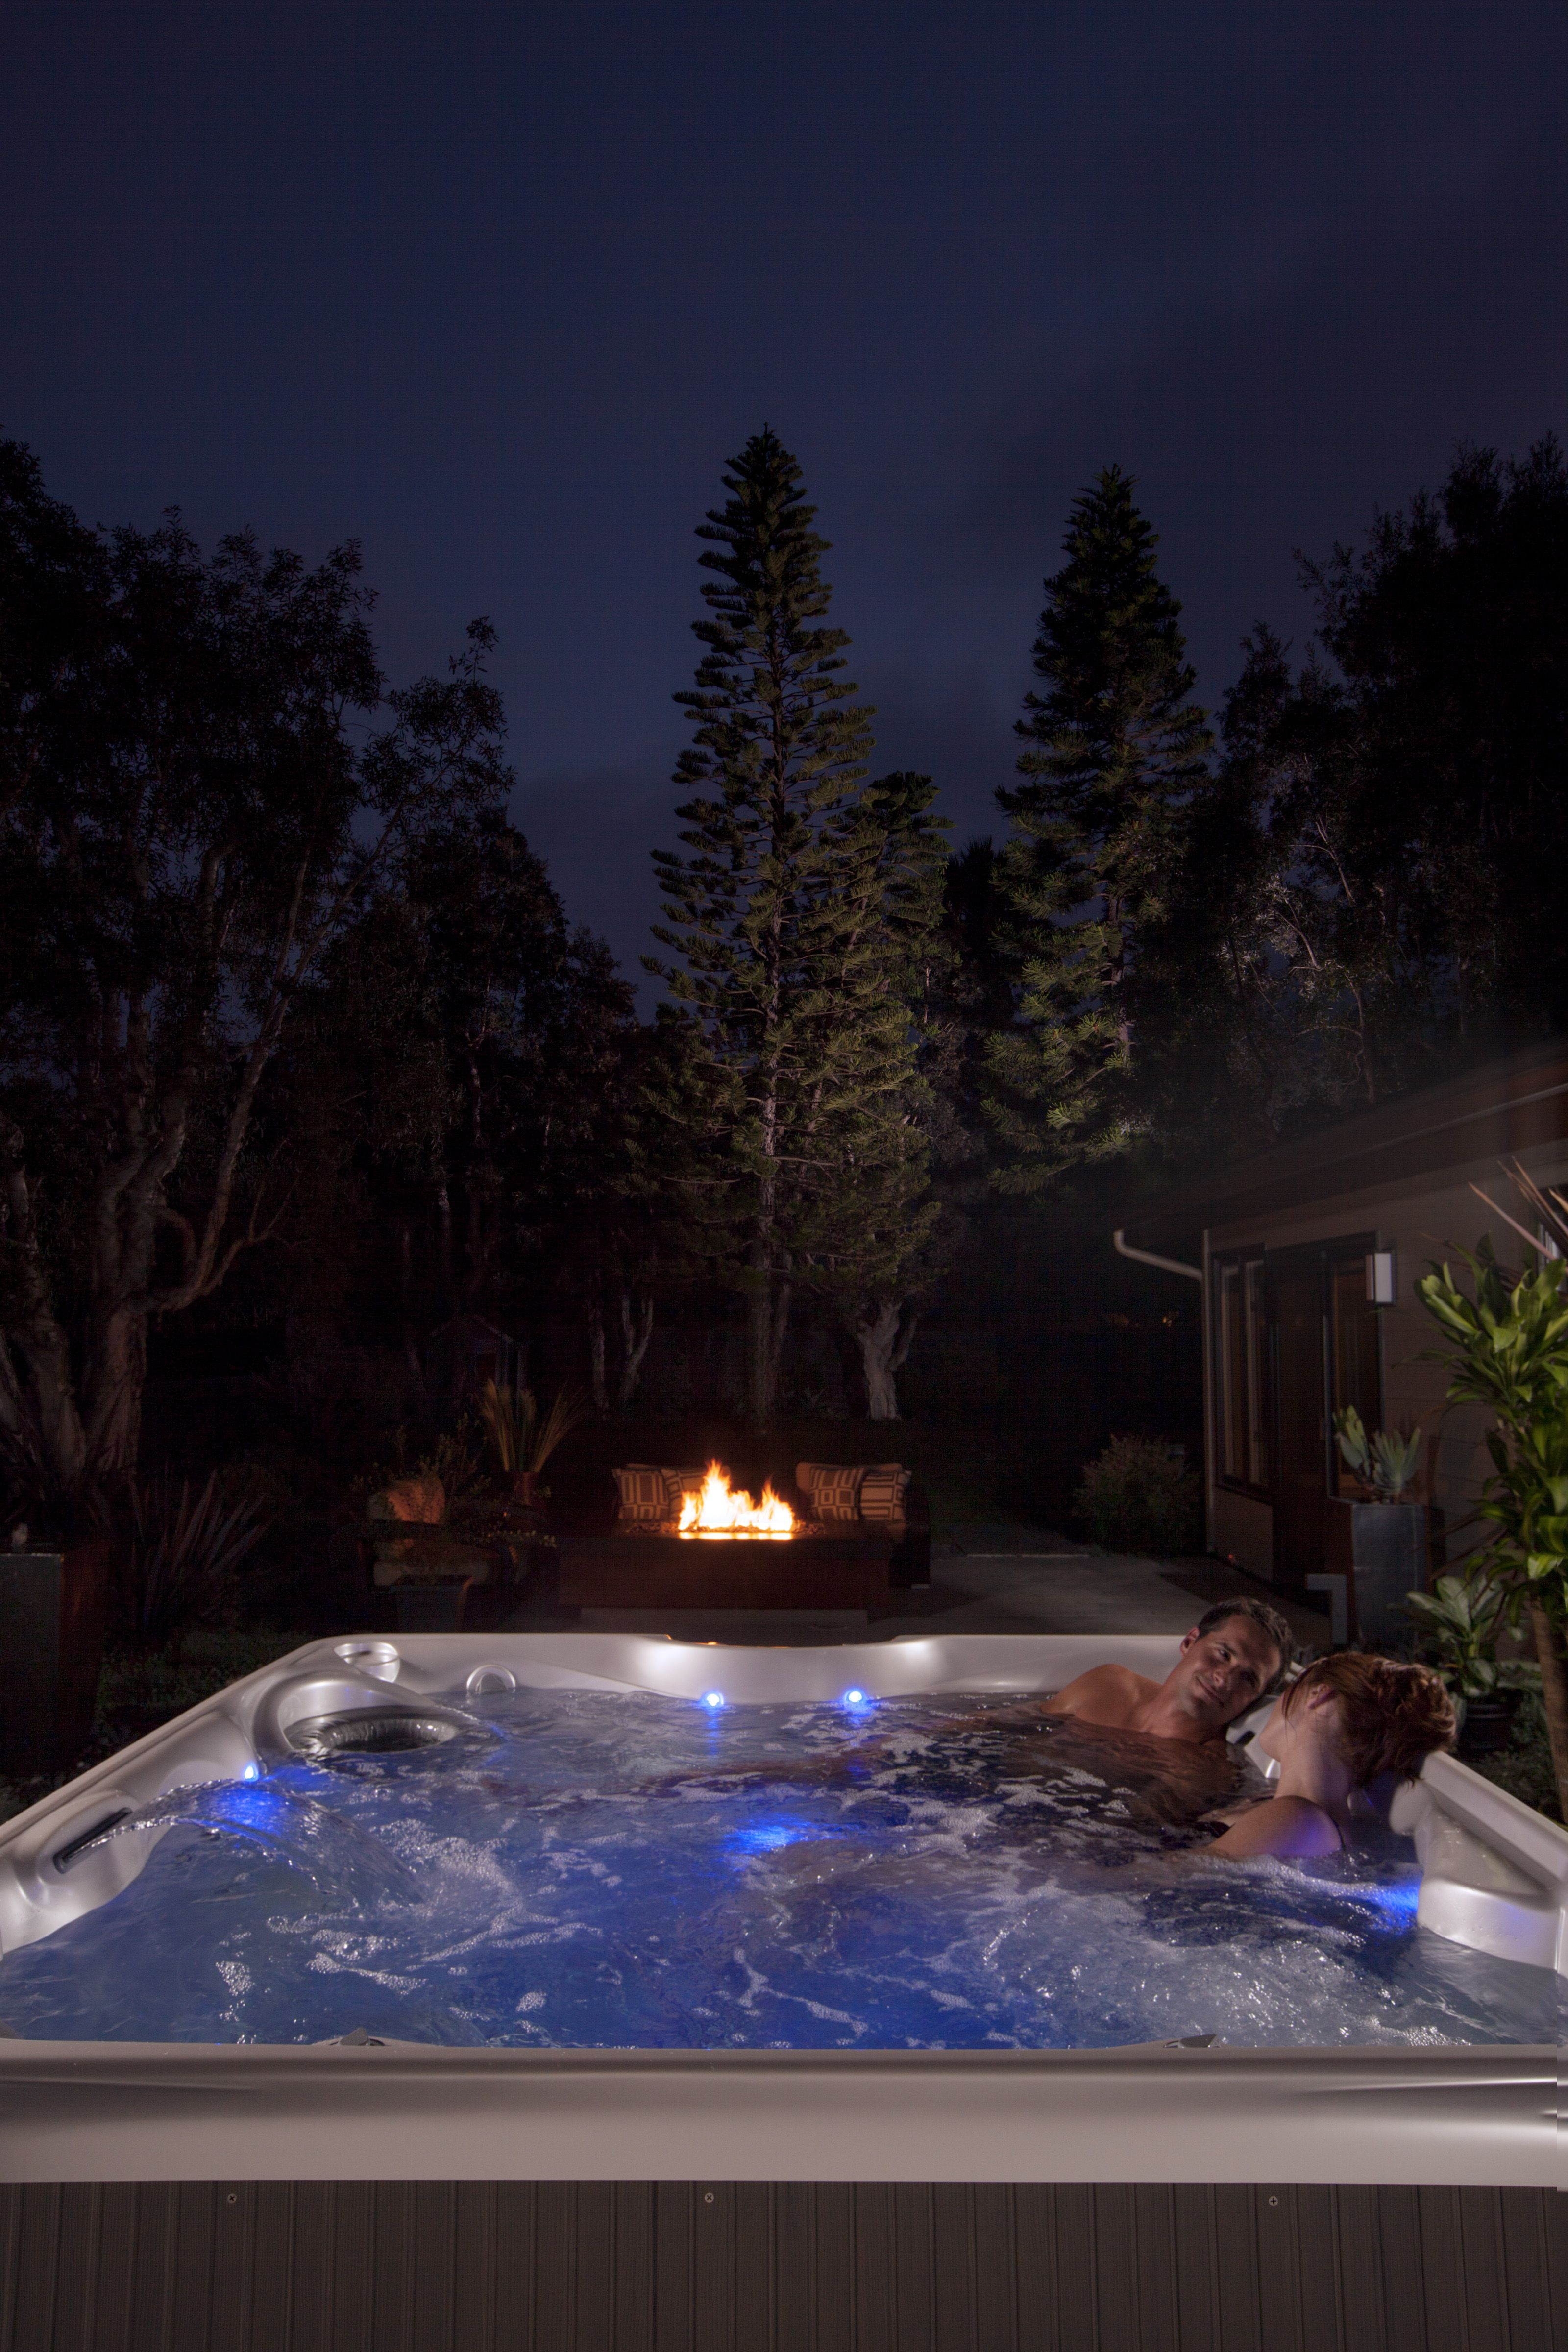 tub country springs tubs hotsprings prices hot continue harrison lake and adventures back the by